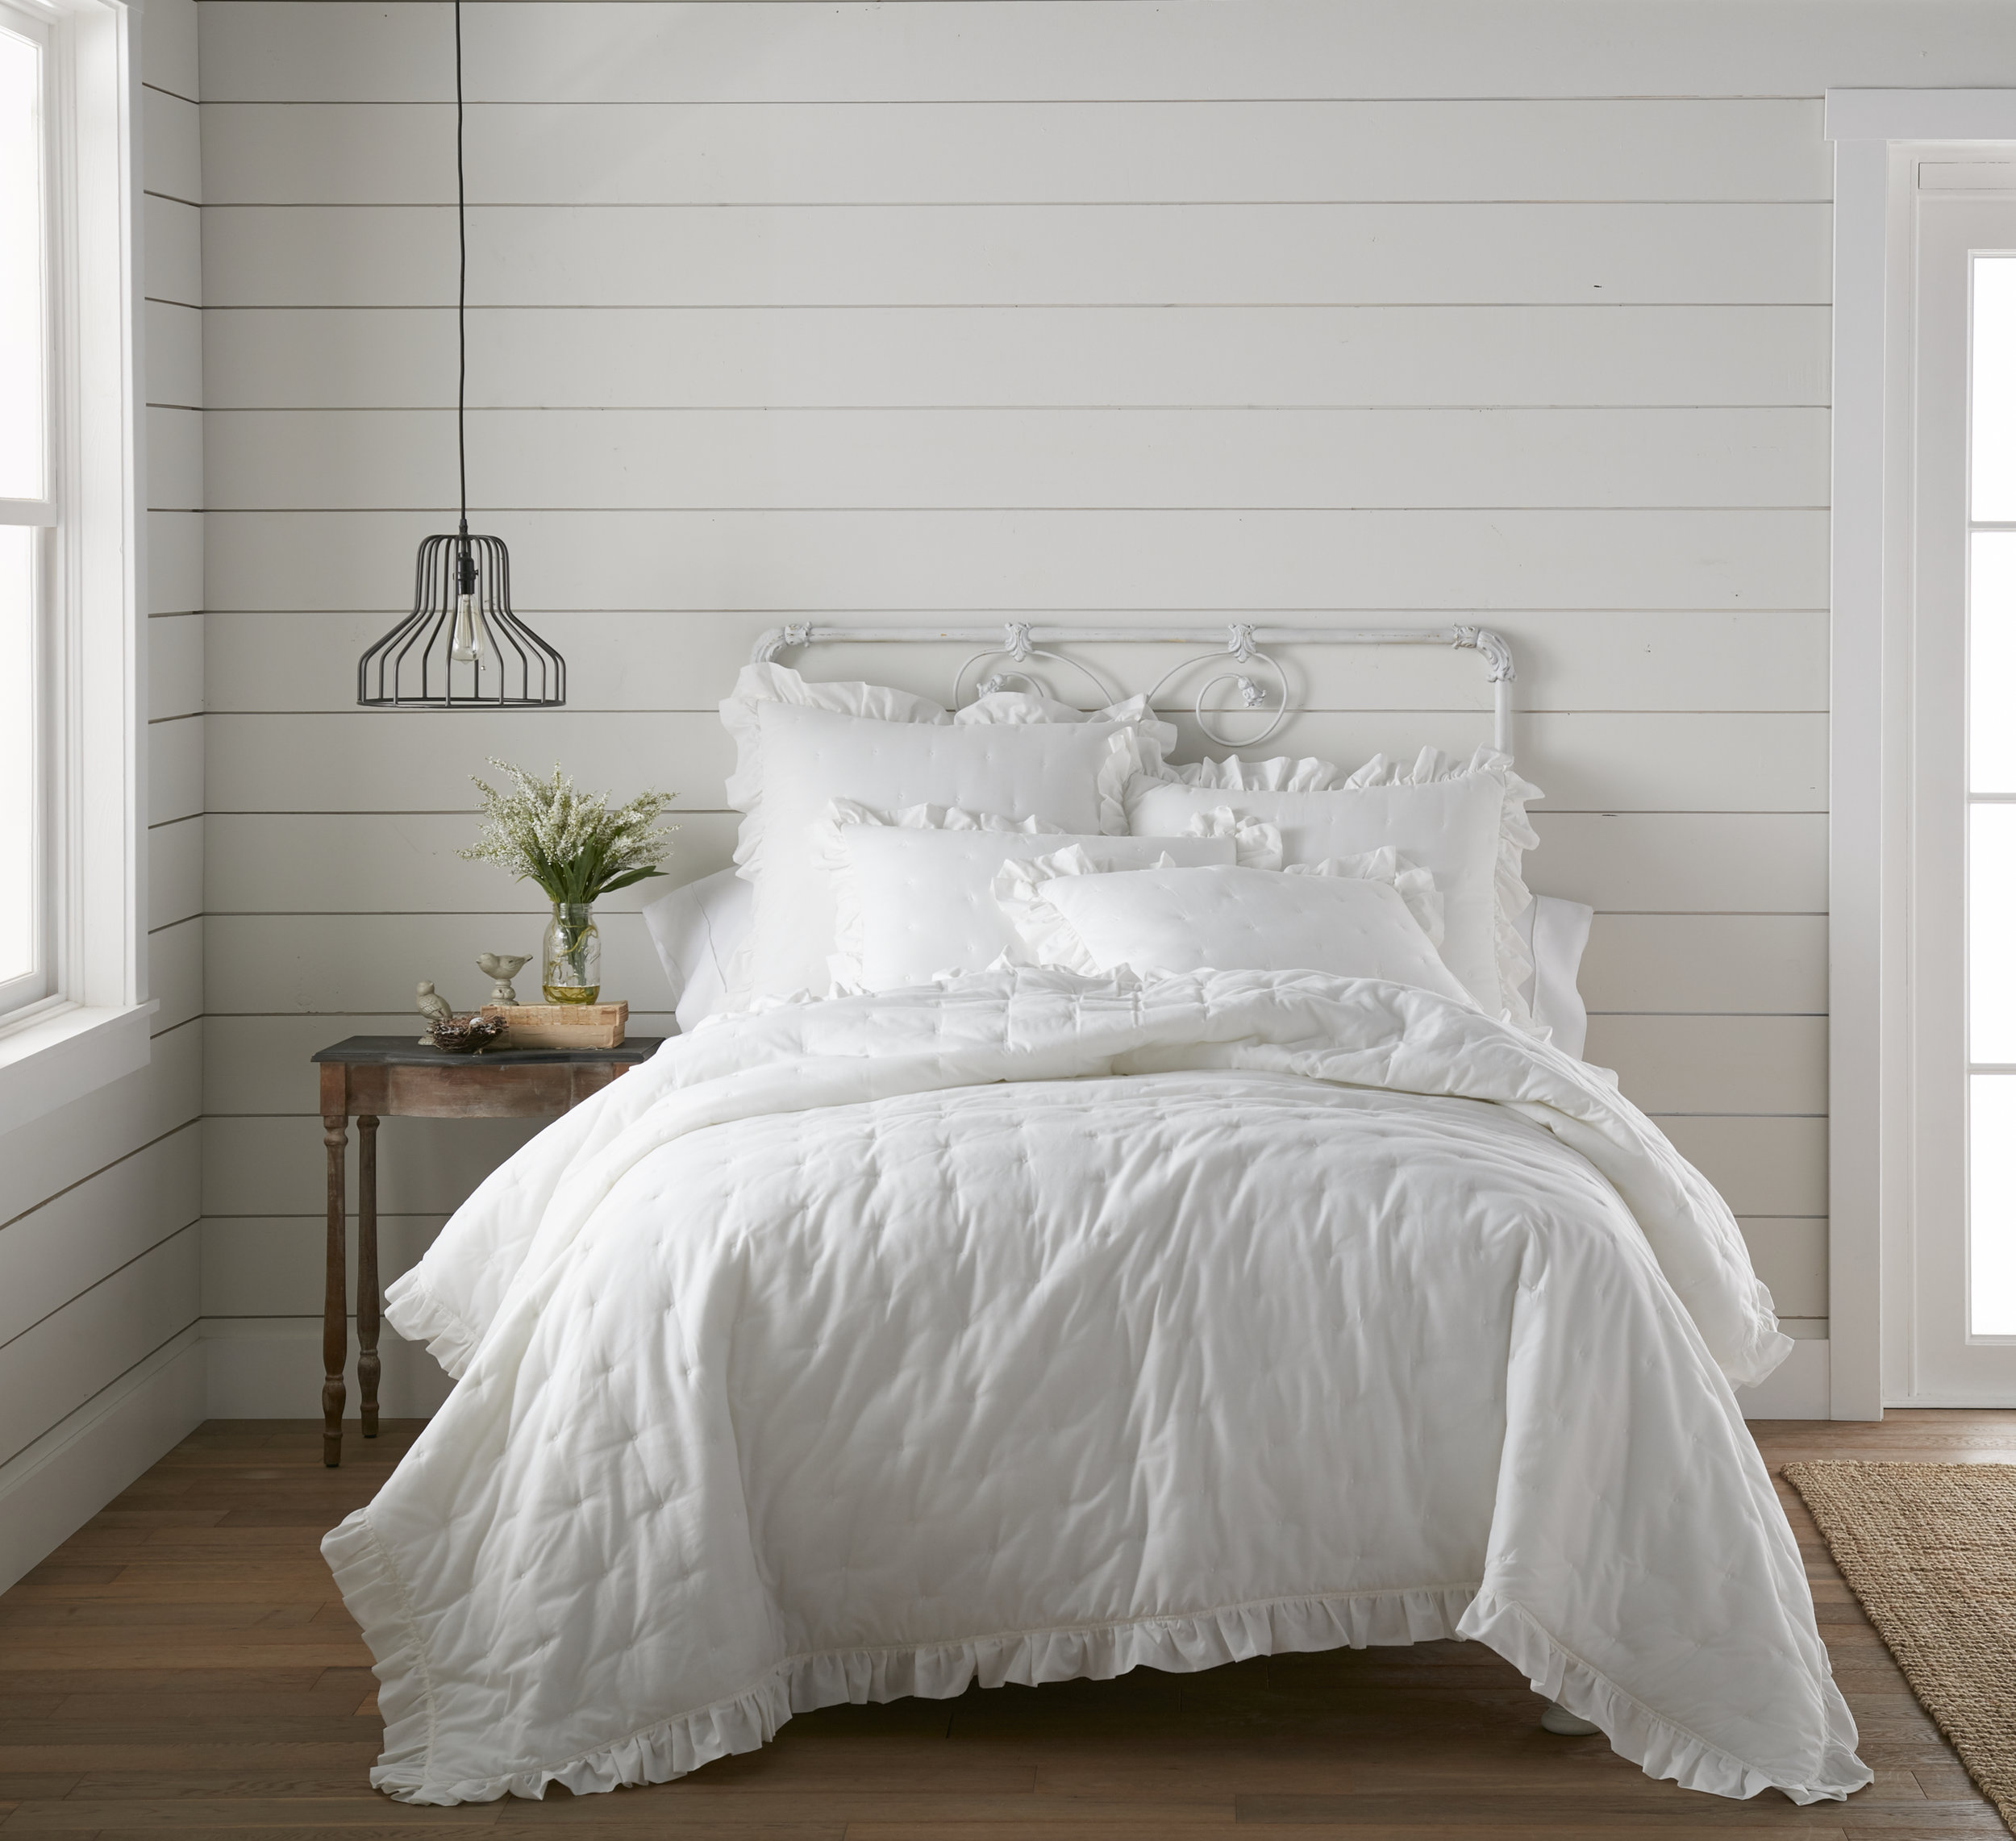 Cotton Voile White Ruffle Farmhouse Bed Quilt by heirloomed collection